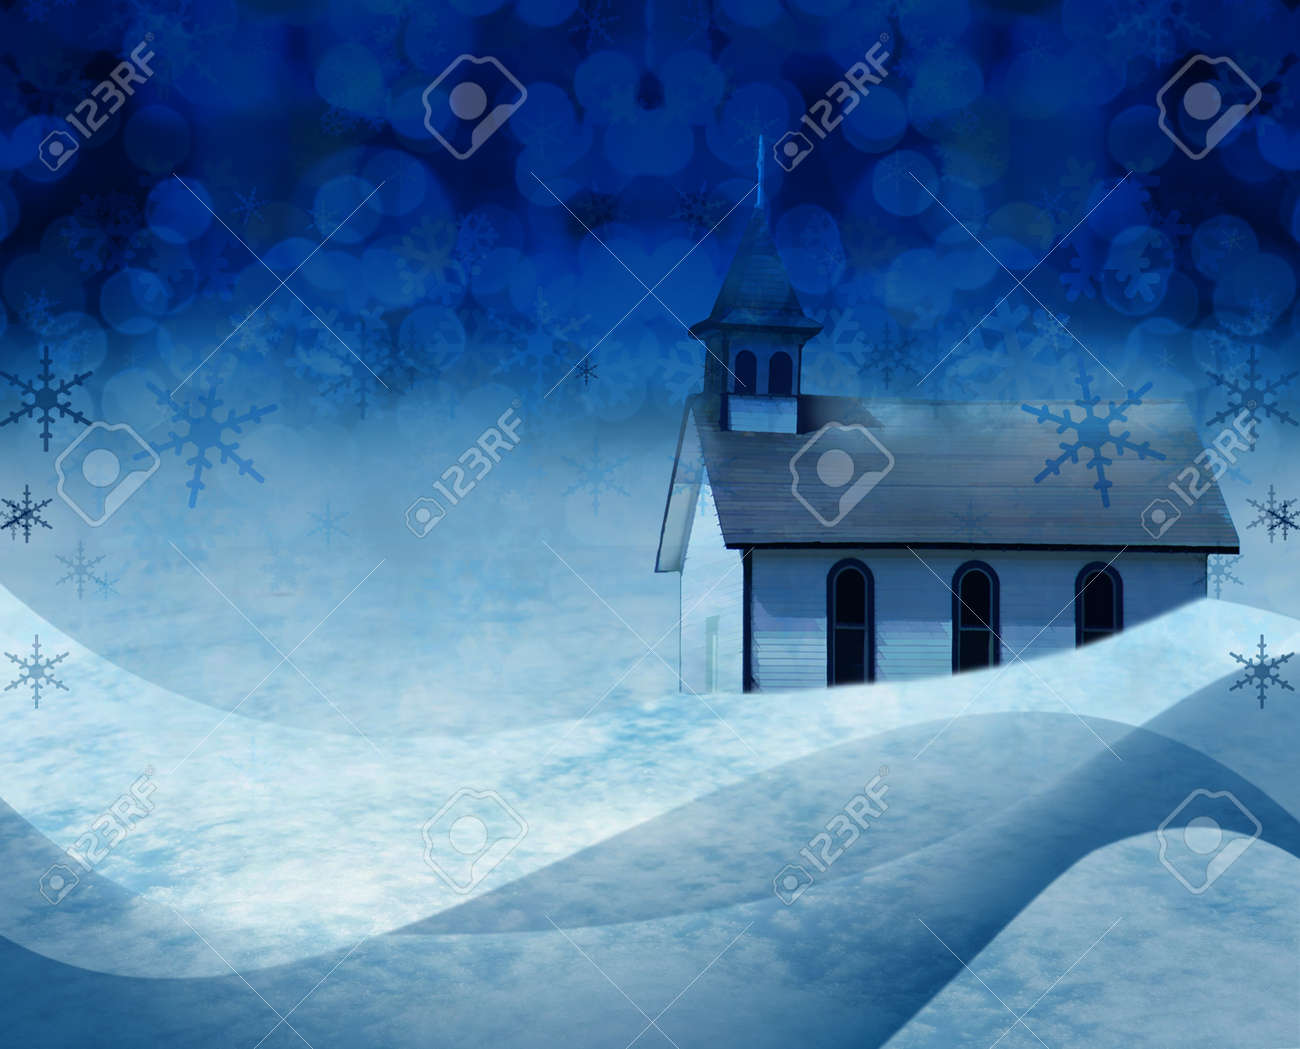 Festive Christmas Church Snow Scene Stock Photo, Picture And ...